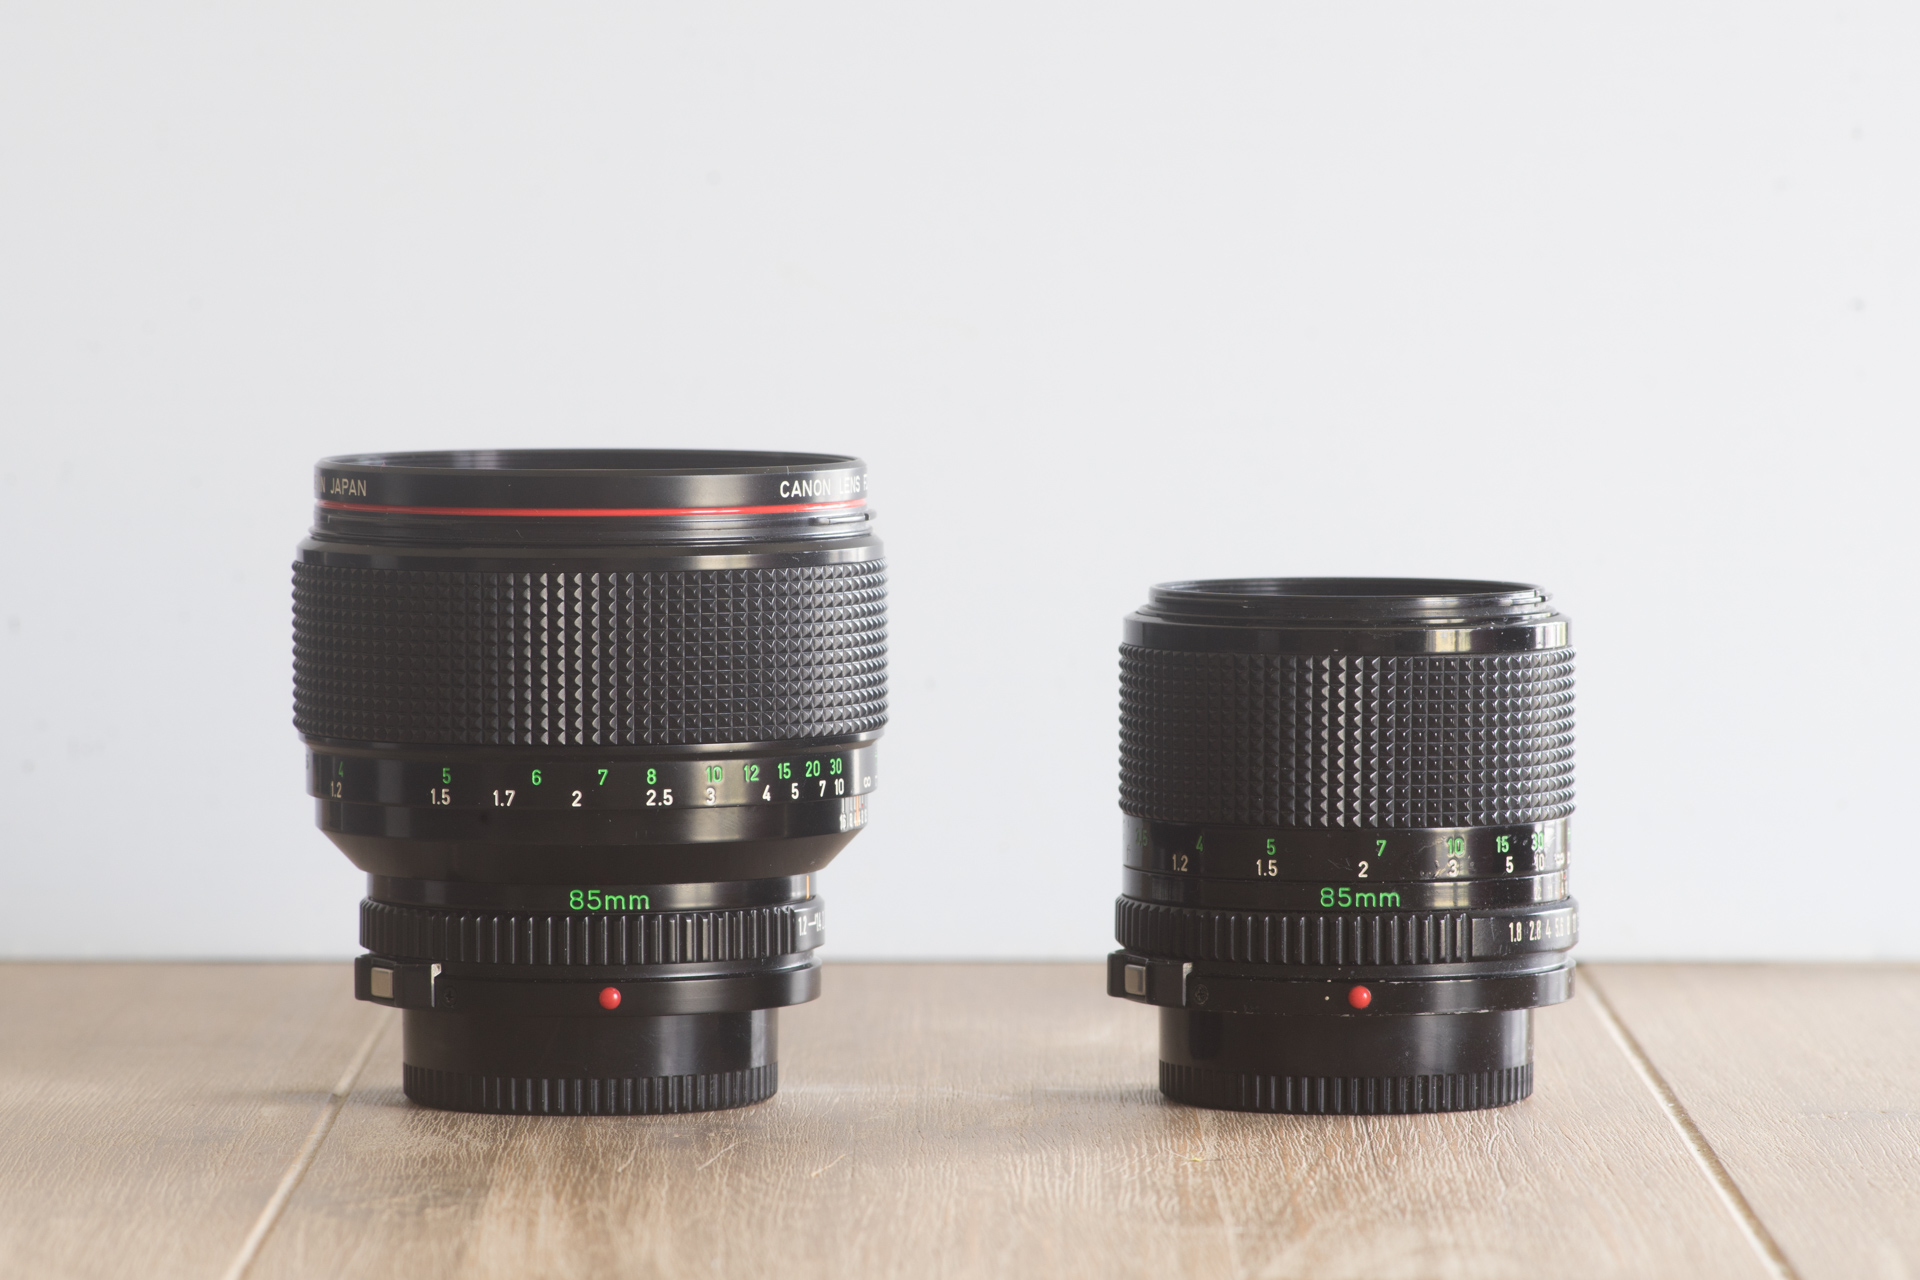 The nFD 85mm f/1.2L on the left, the 85/1.8 on the right.